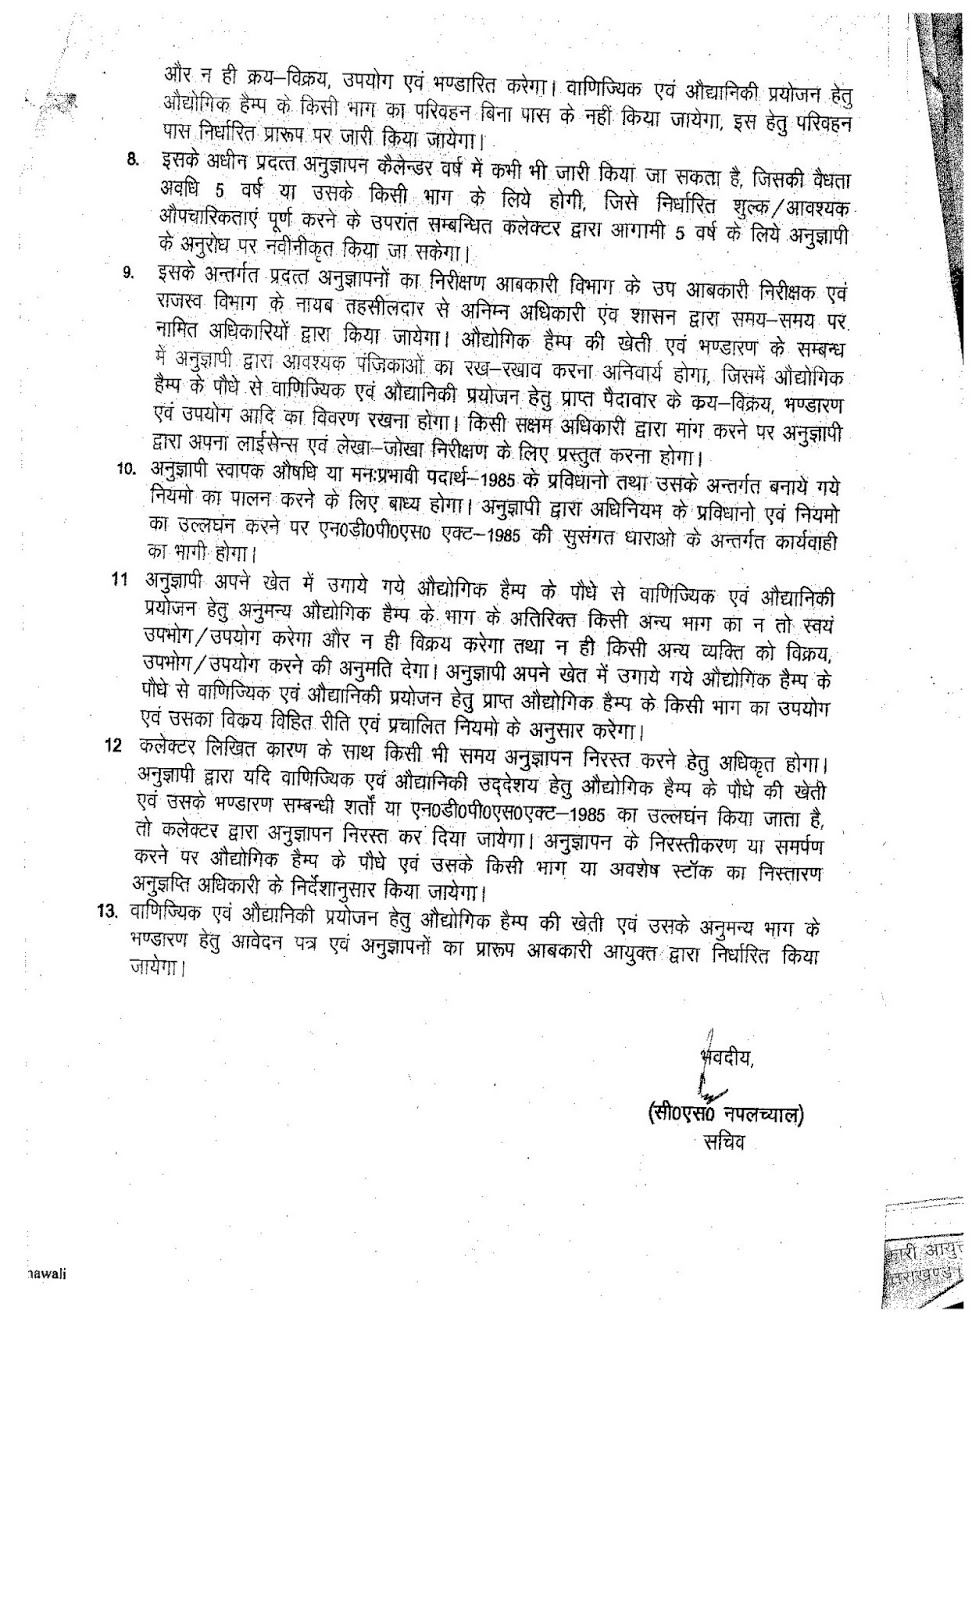 legal requirements of hemp cultivation in Uttarakhand